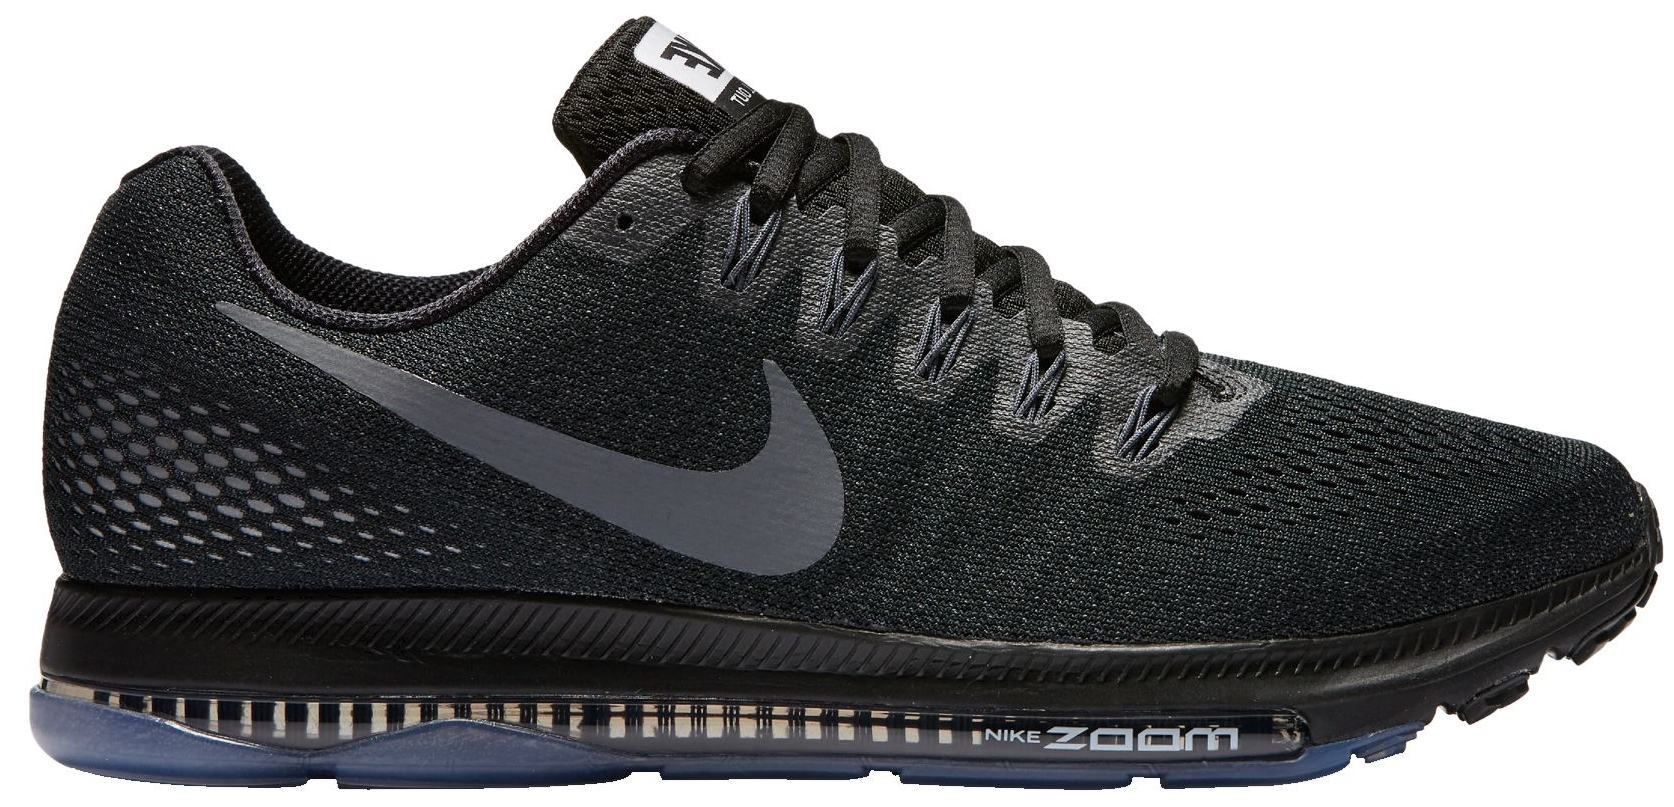 Nike Men's Zoom All Out Low Running Shoes - Black - 11.0